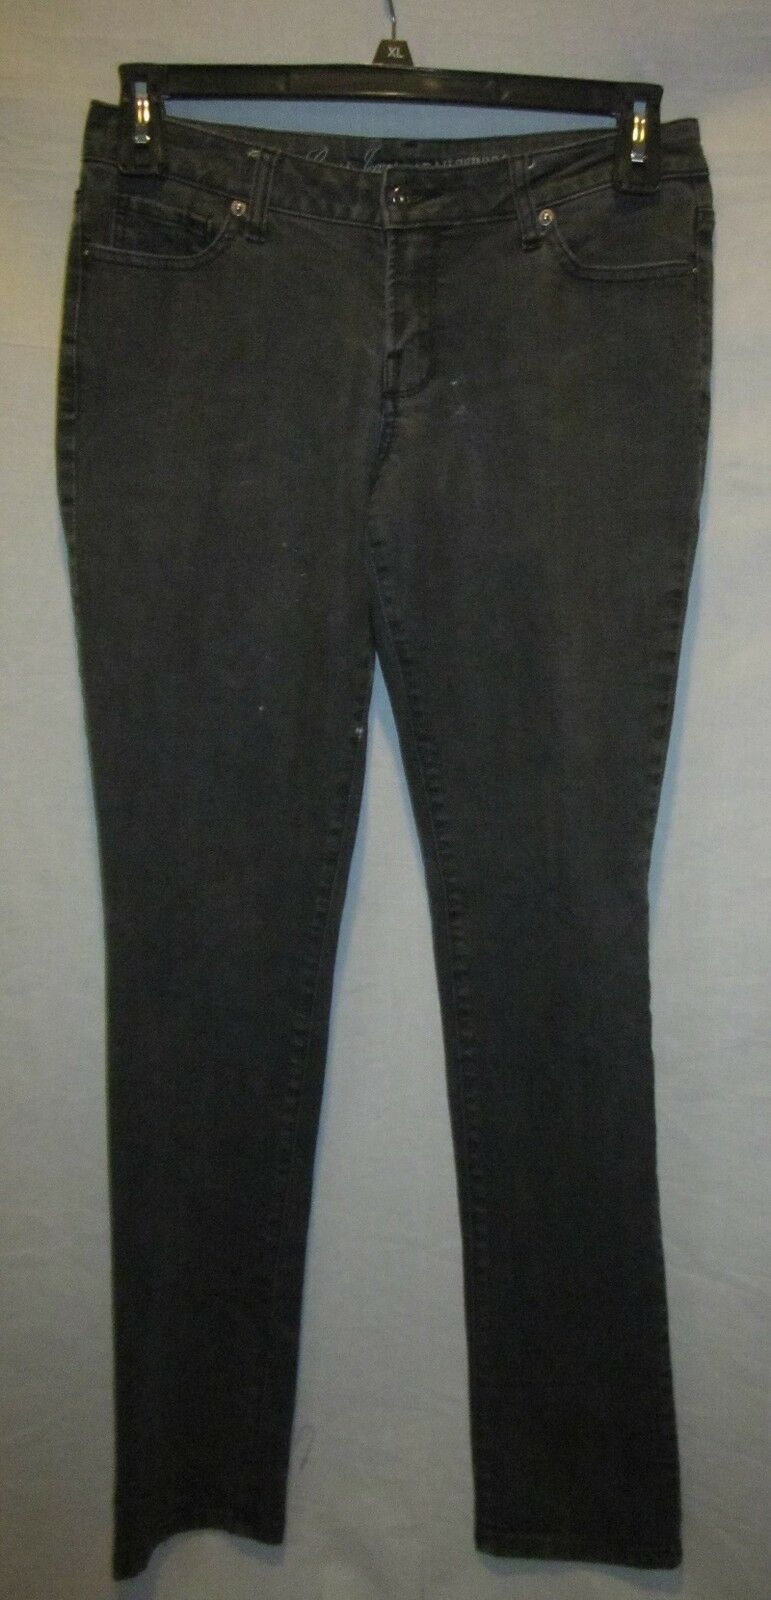 GUESS JEANS STONEWASHED SARAH SKINNY JEANS SZ 29 NWOTS